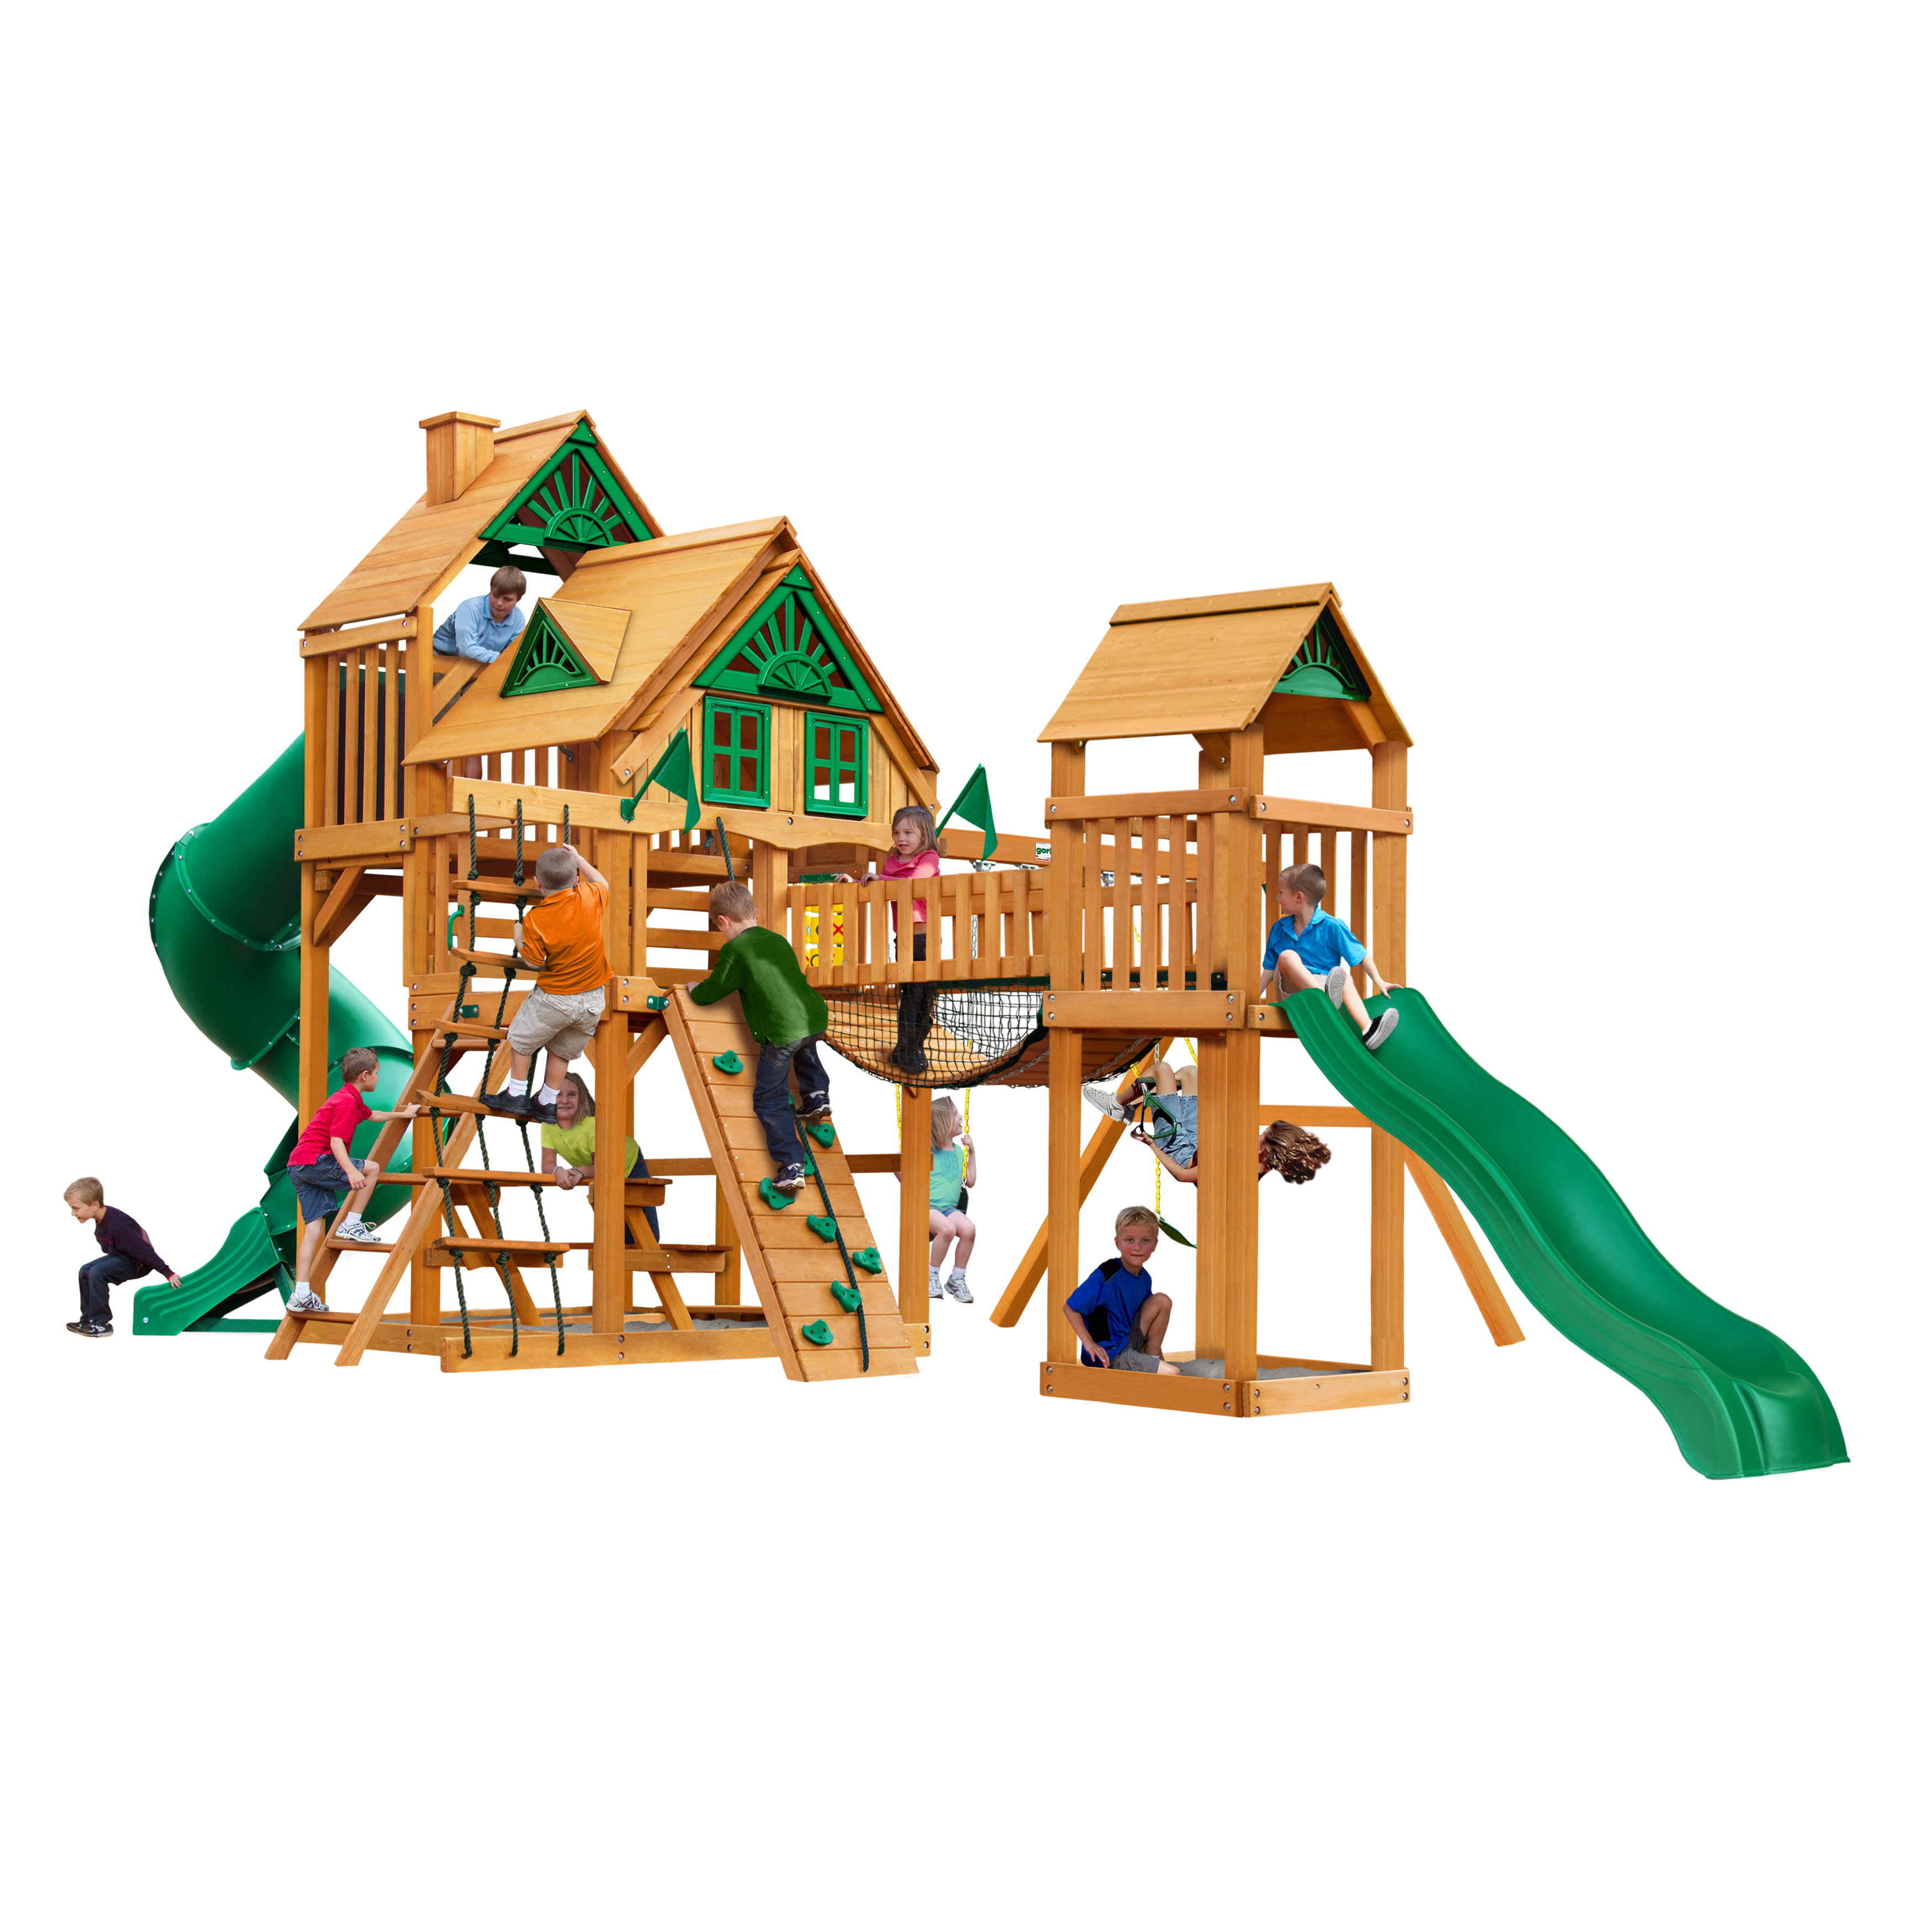 Gorilla Playsets Treasure Trove Treehouse Wooden Swing Set with 2 Belt Swings, Clatter Bridge and Tower, and 2... by Gorilla Playsets